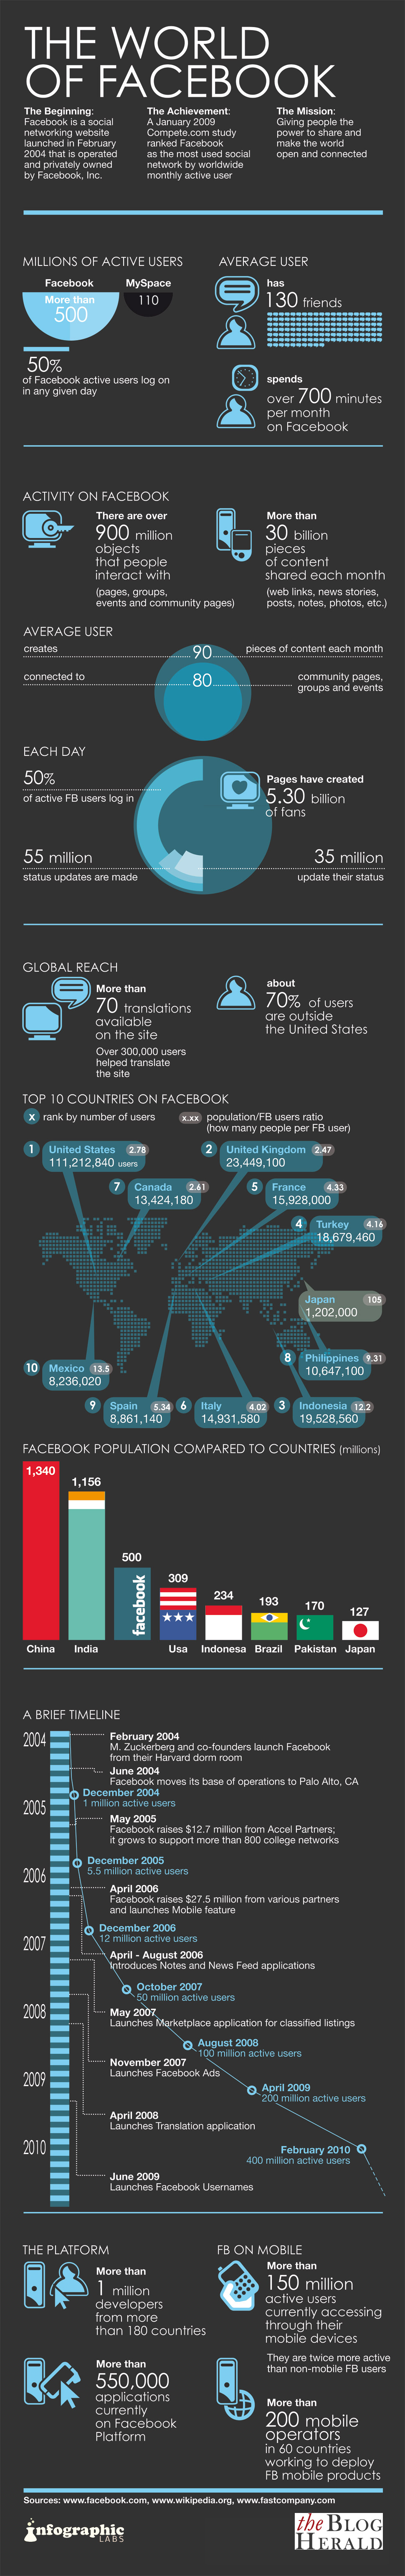 Facebook Statistics: The Numbers Game Continues